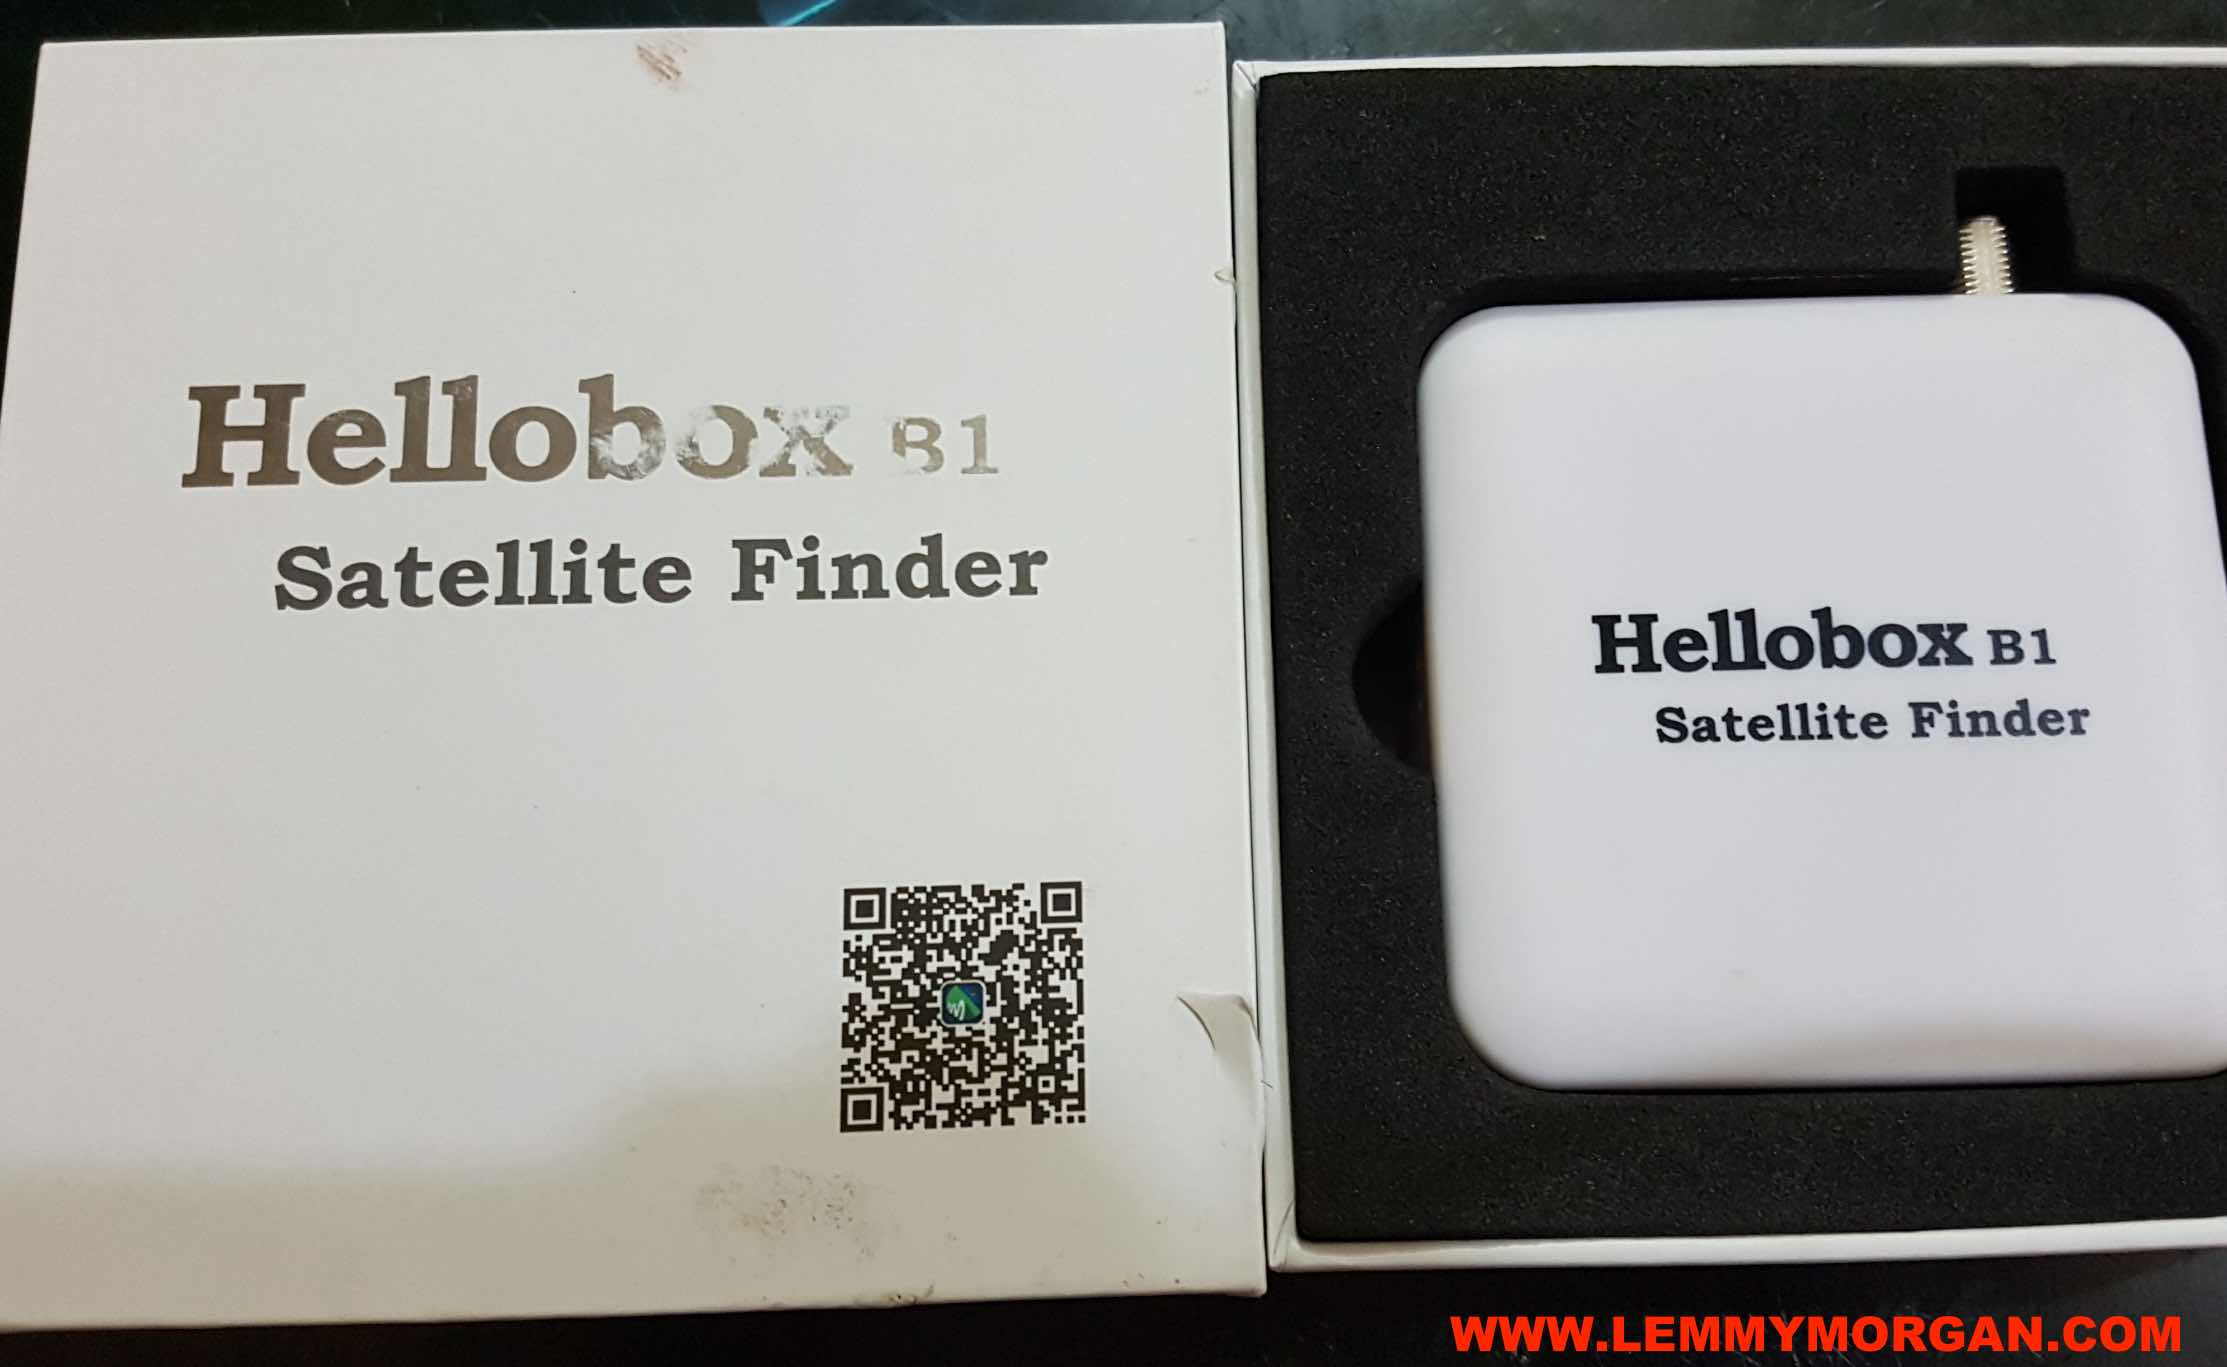 [Hands-on review]Hellobox B1 Bluetooth Satellite finder learn about our impression